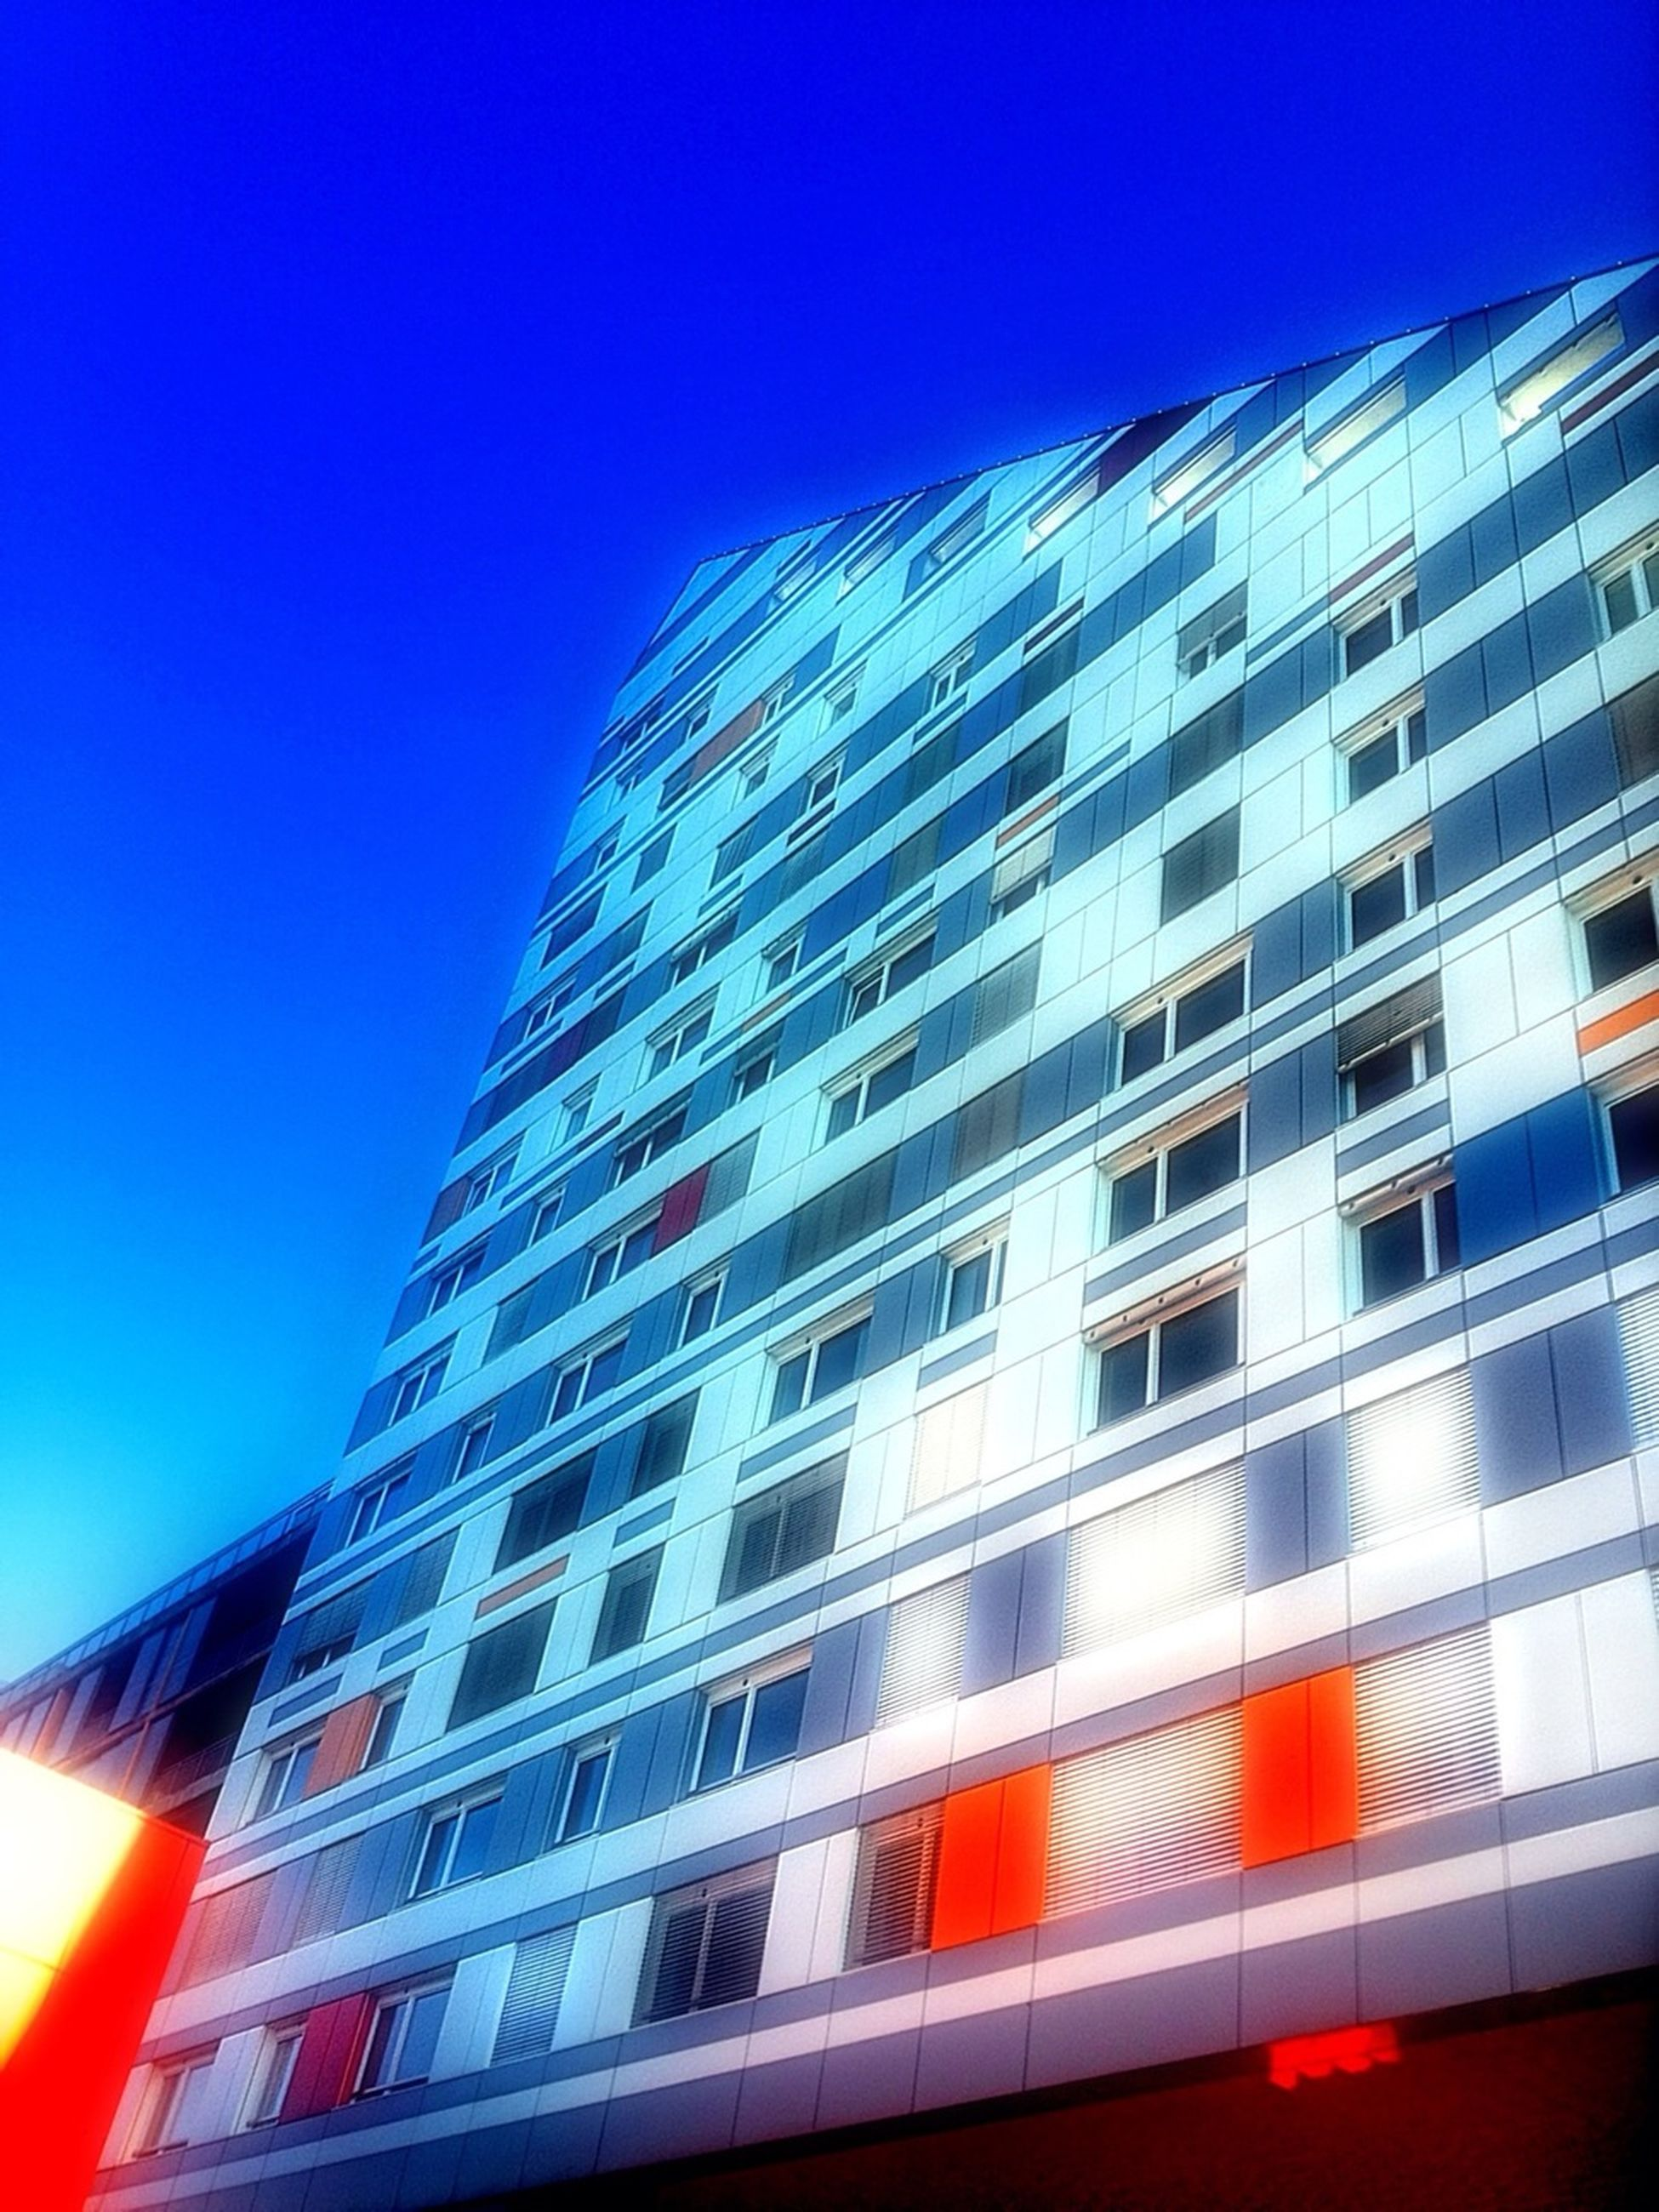 architecture, building exterior, built structure, modern, low angle view, city, office building, skyscraper, clear sky, tall - high, blue, building, glass - material, tower, reflection, window, city life, day, outdoors, no people